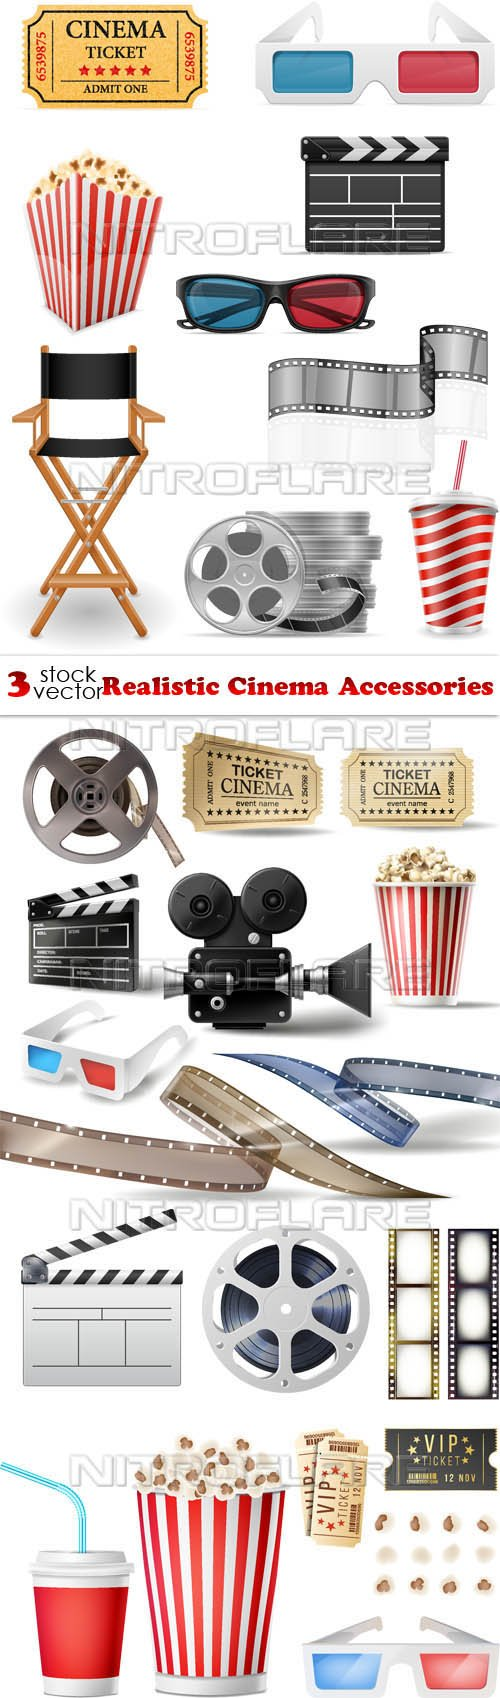 Vectors - Realistic Cinema Accessories